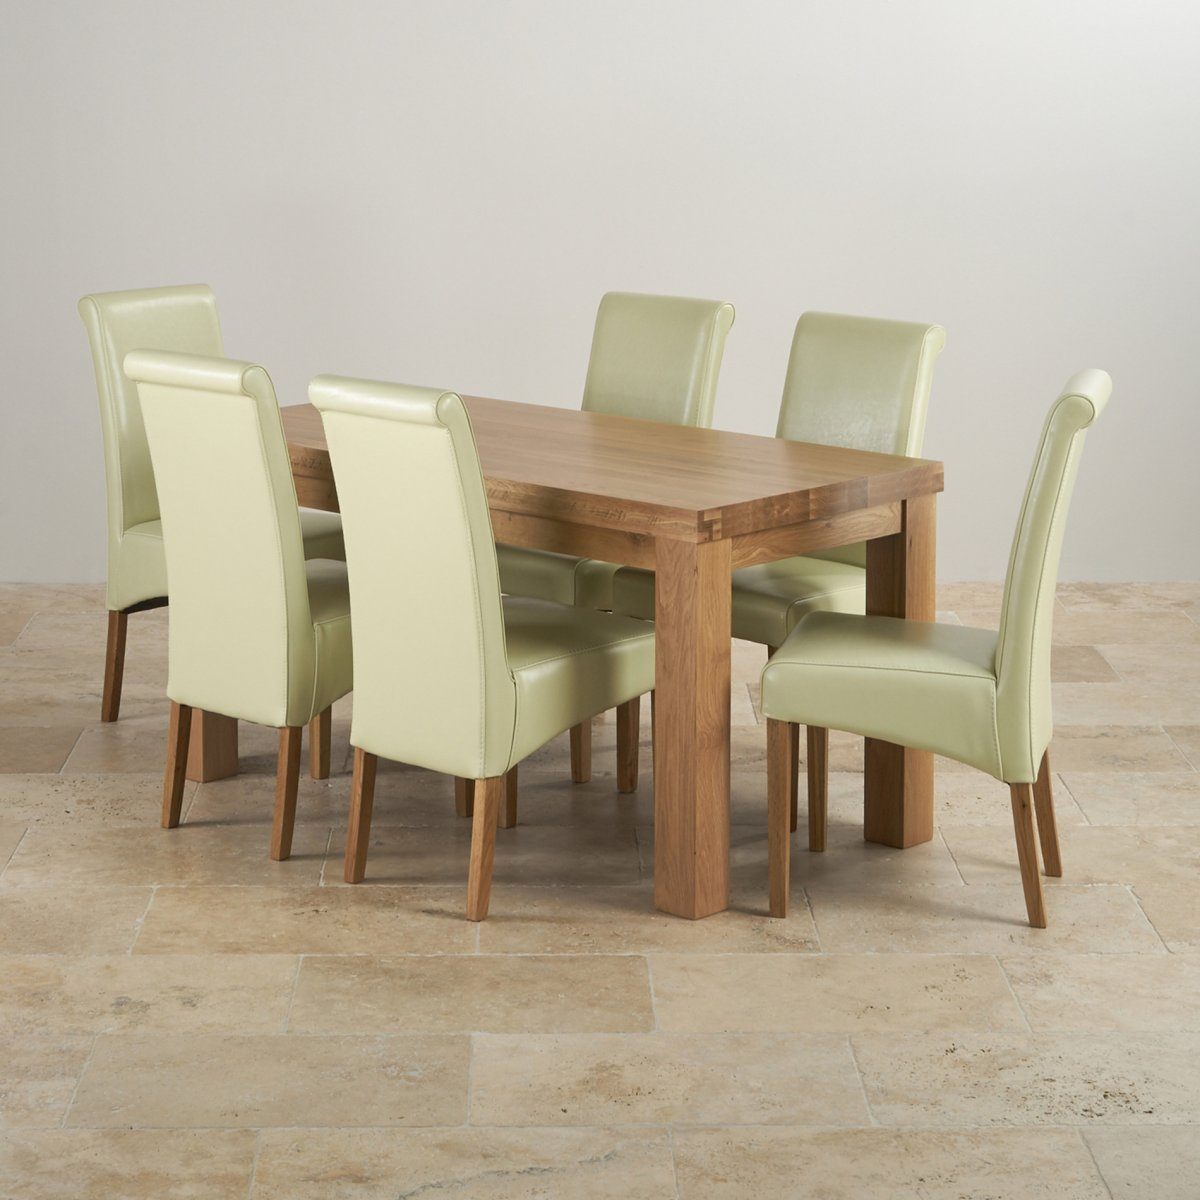 Chunky Dining Set in Oak Dining Table 6 Cream Leather  : contemporary chunky natural solid oak dining set 5ft table with 6 scroll back cream leather chairs 56f55cc38142793965c6d8f384dfbf6e6e9b0f36ede71 from www.oakfurnitureland.co.uk size 1200 x 1200 jpeg 134kB